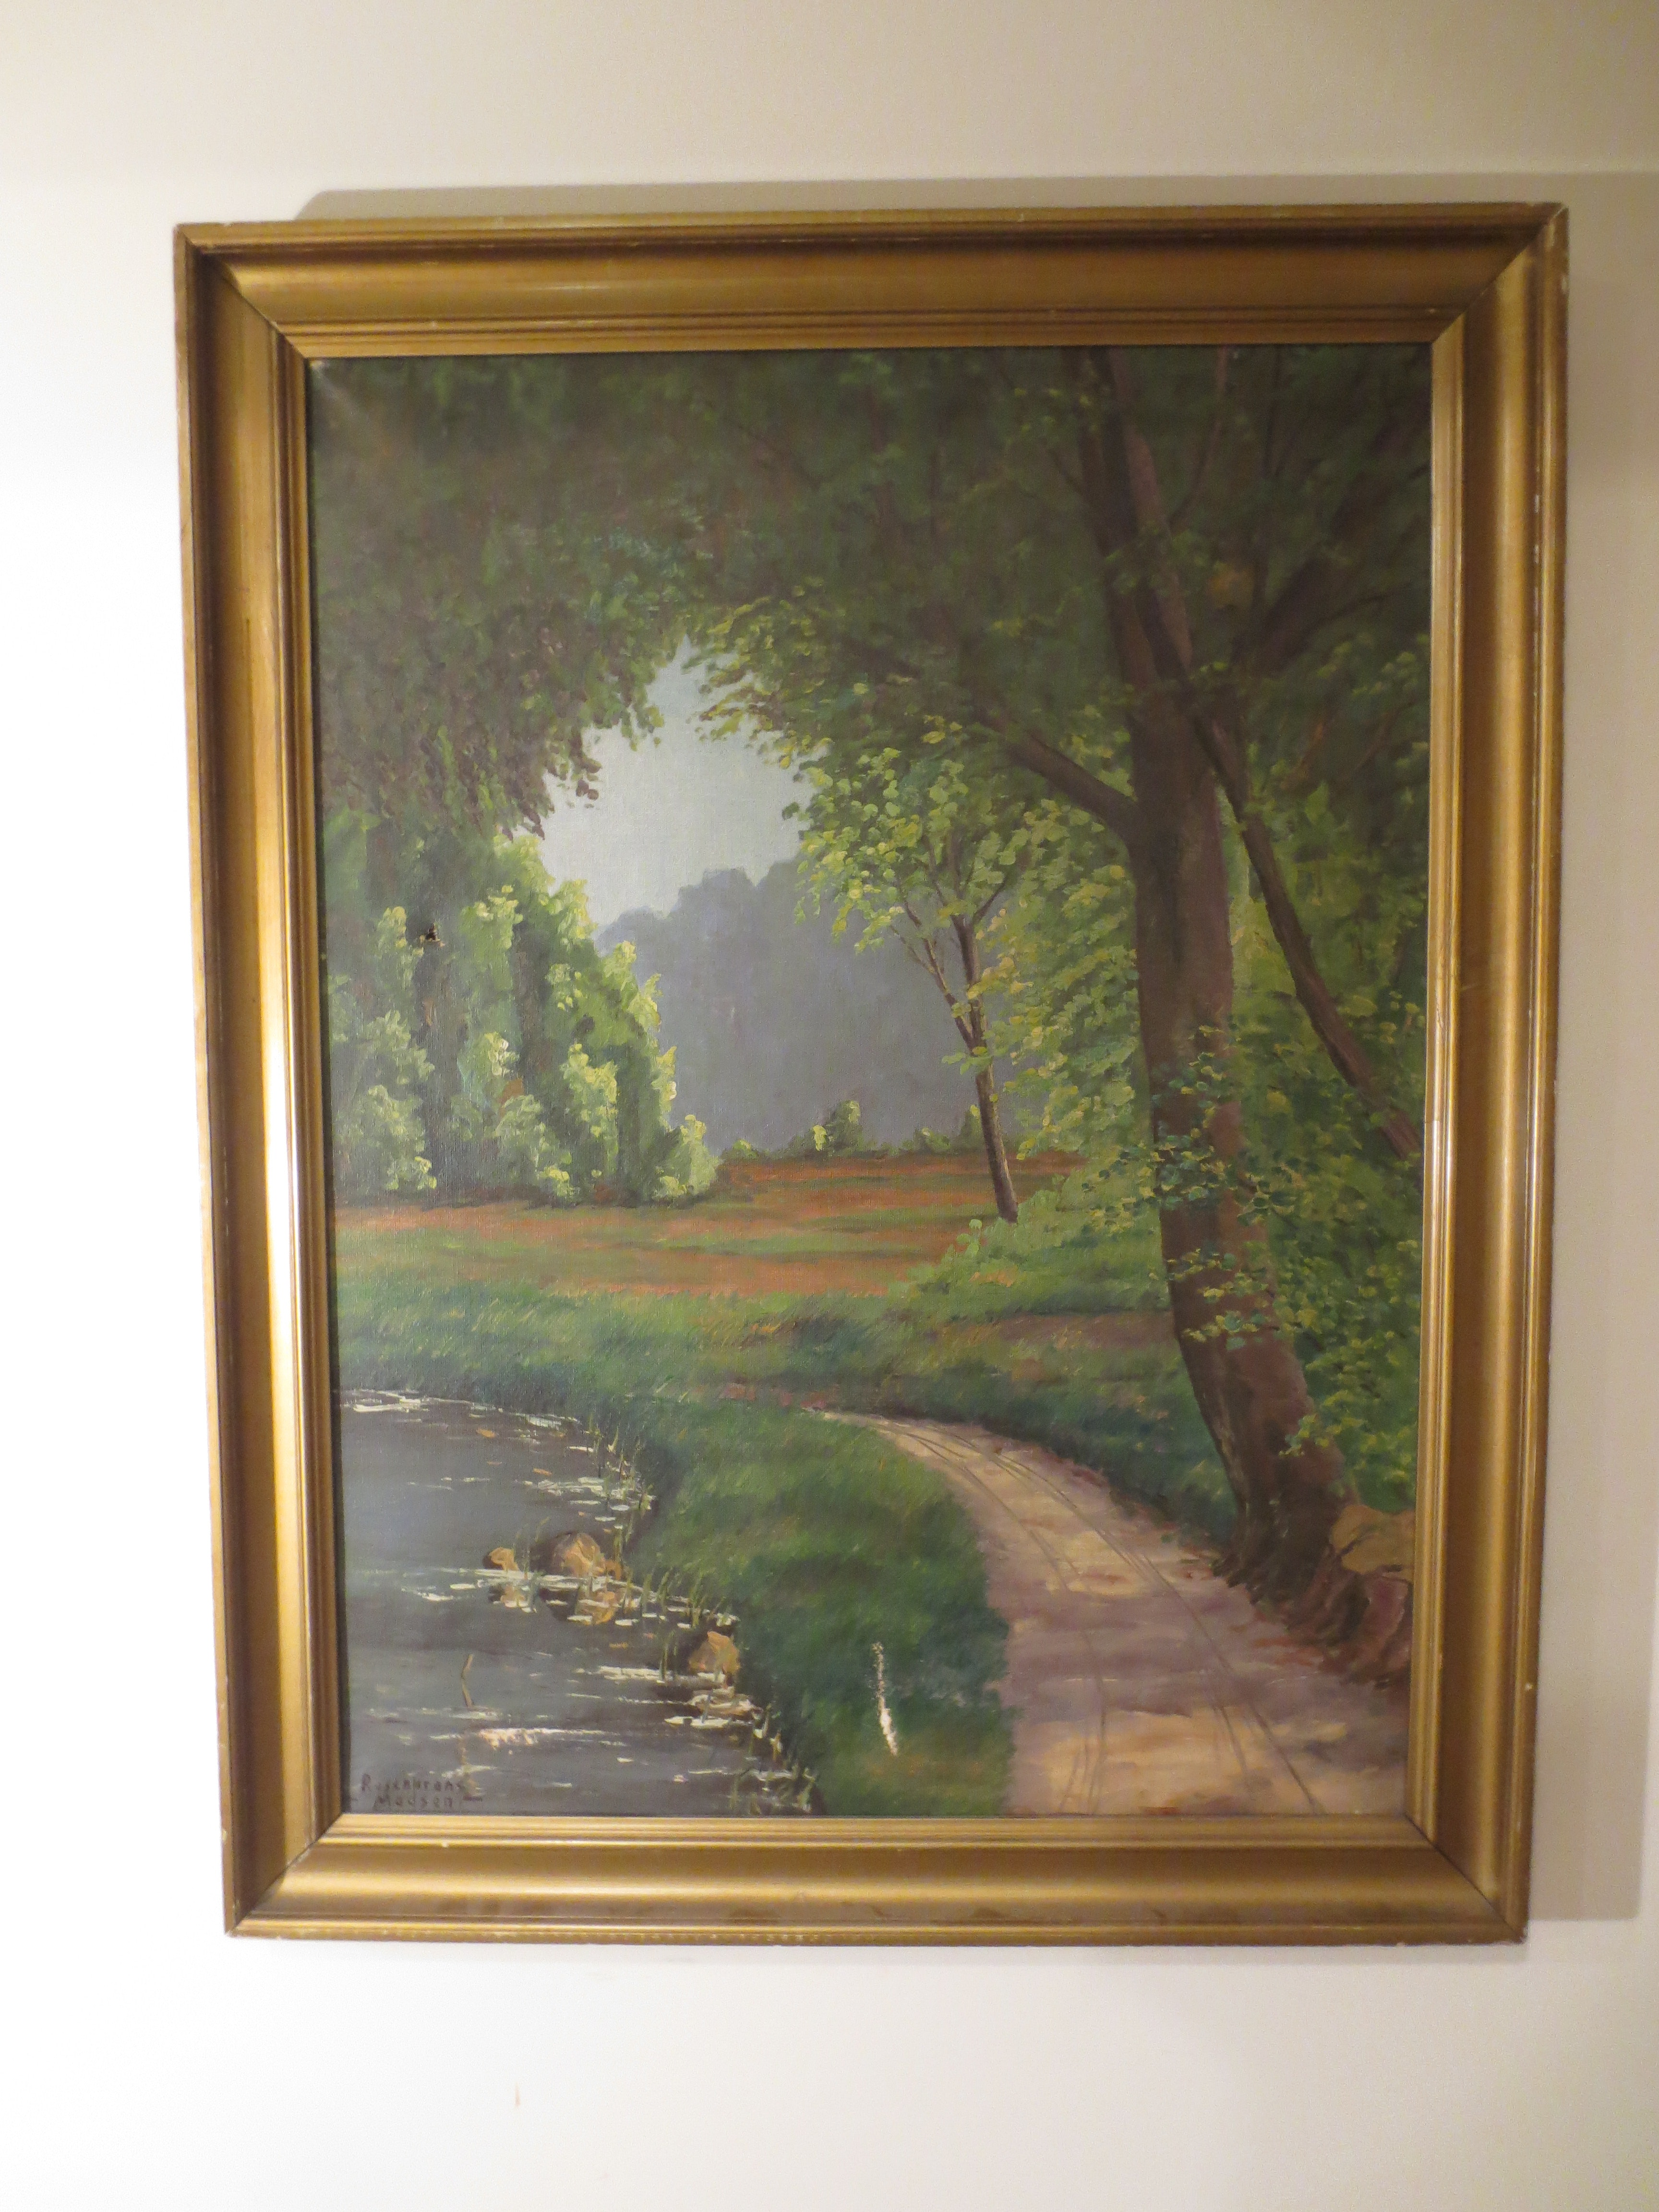 Rosencrantz Madsen Oil on Canvas Landscape Painting